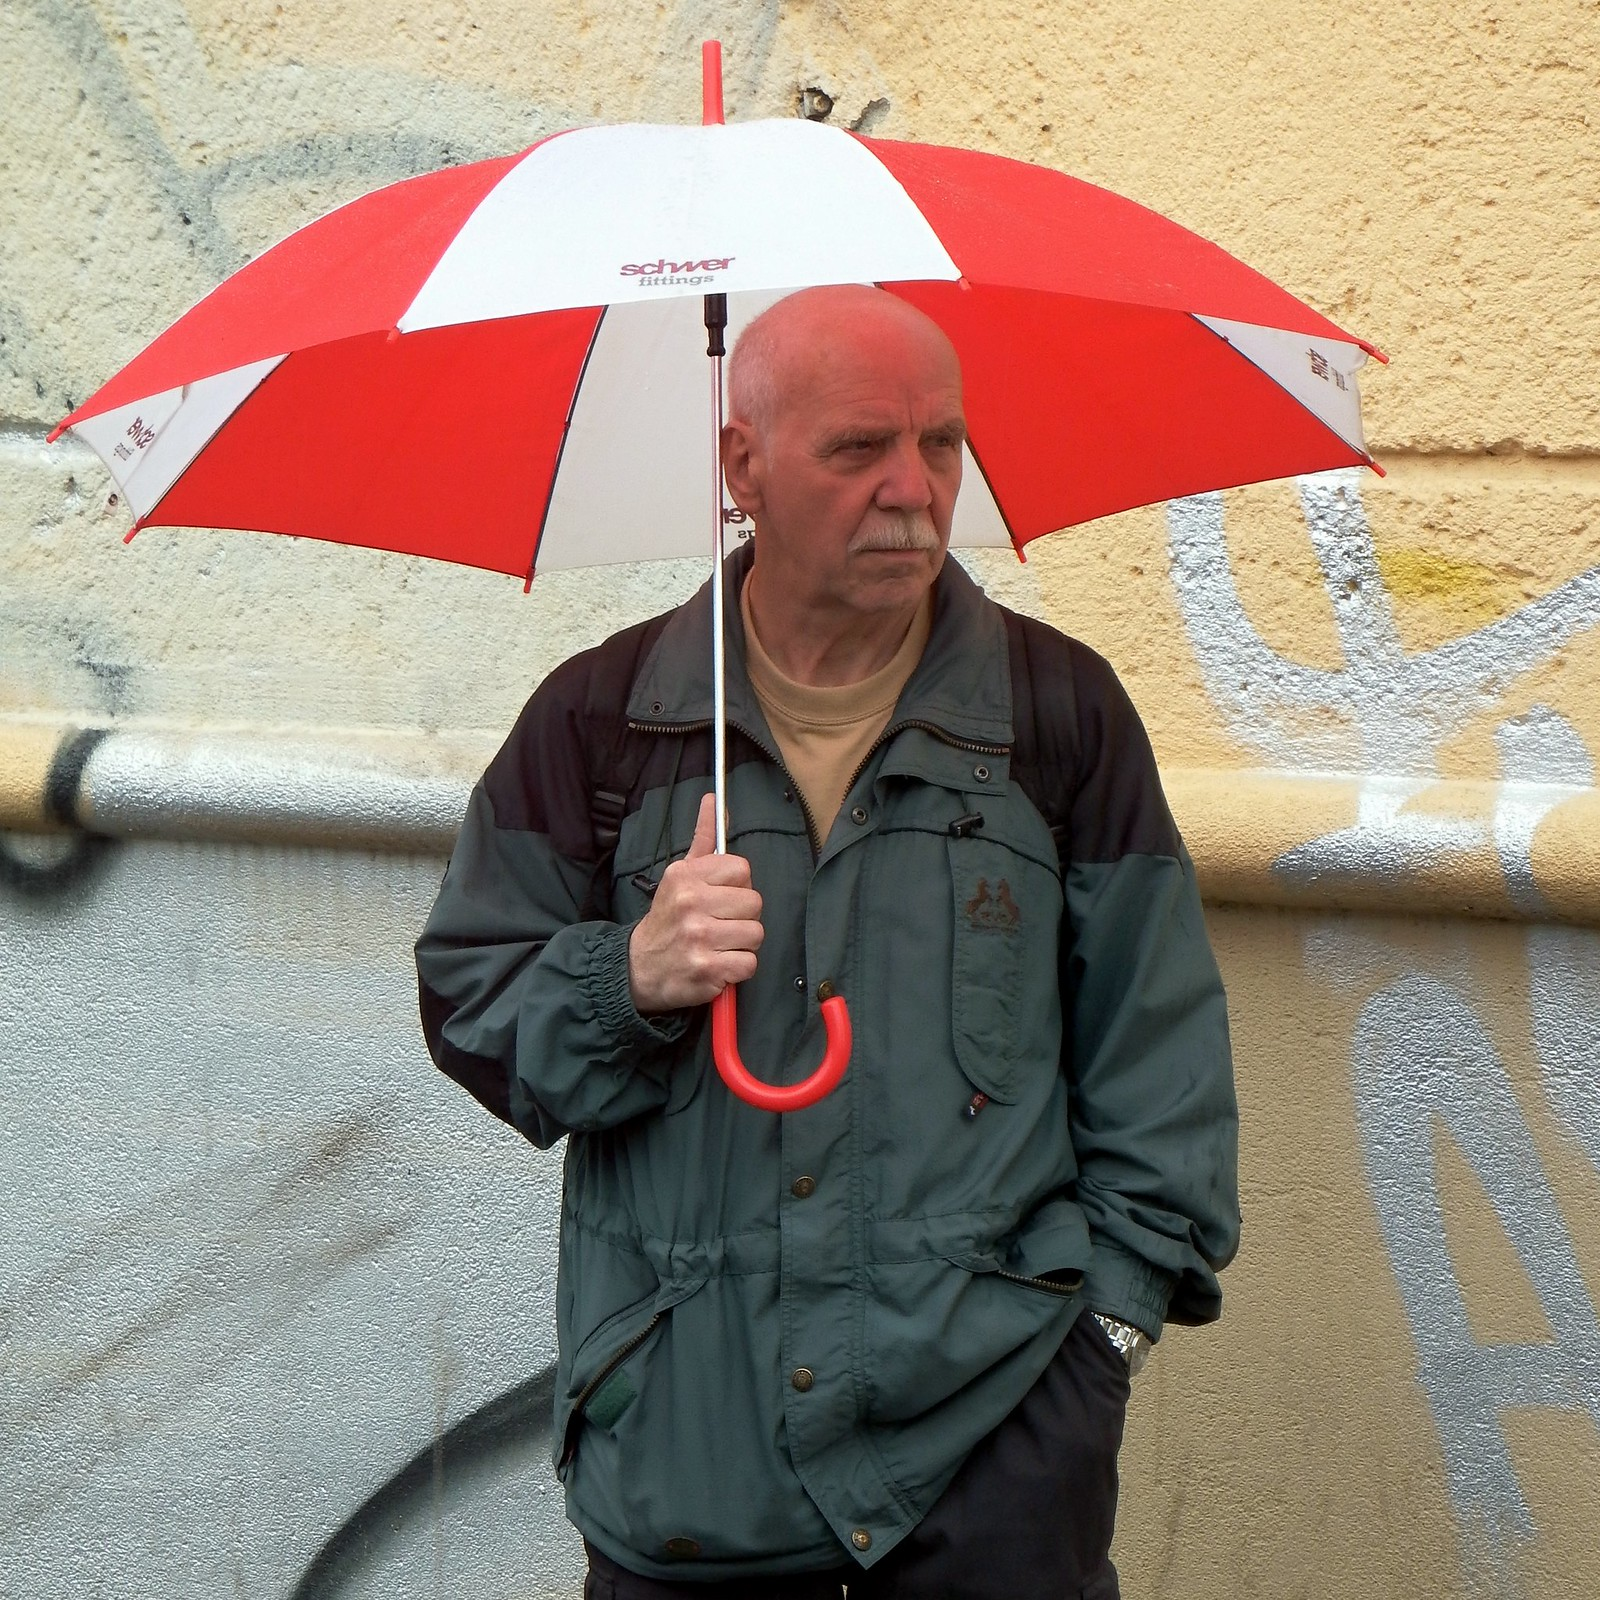 Man with Red&White Umbrella